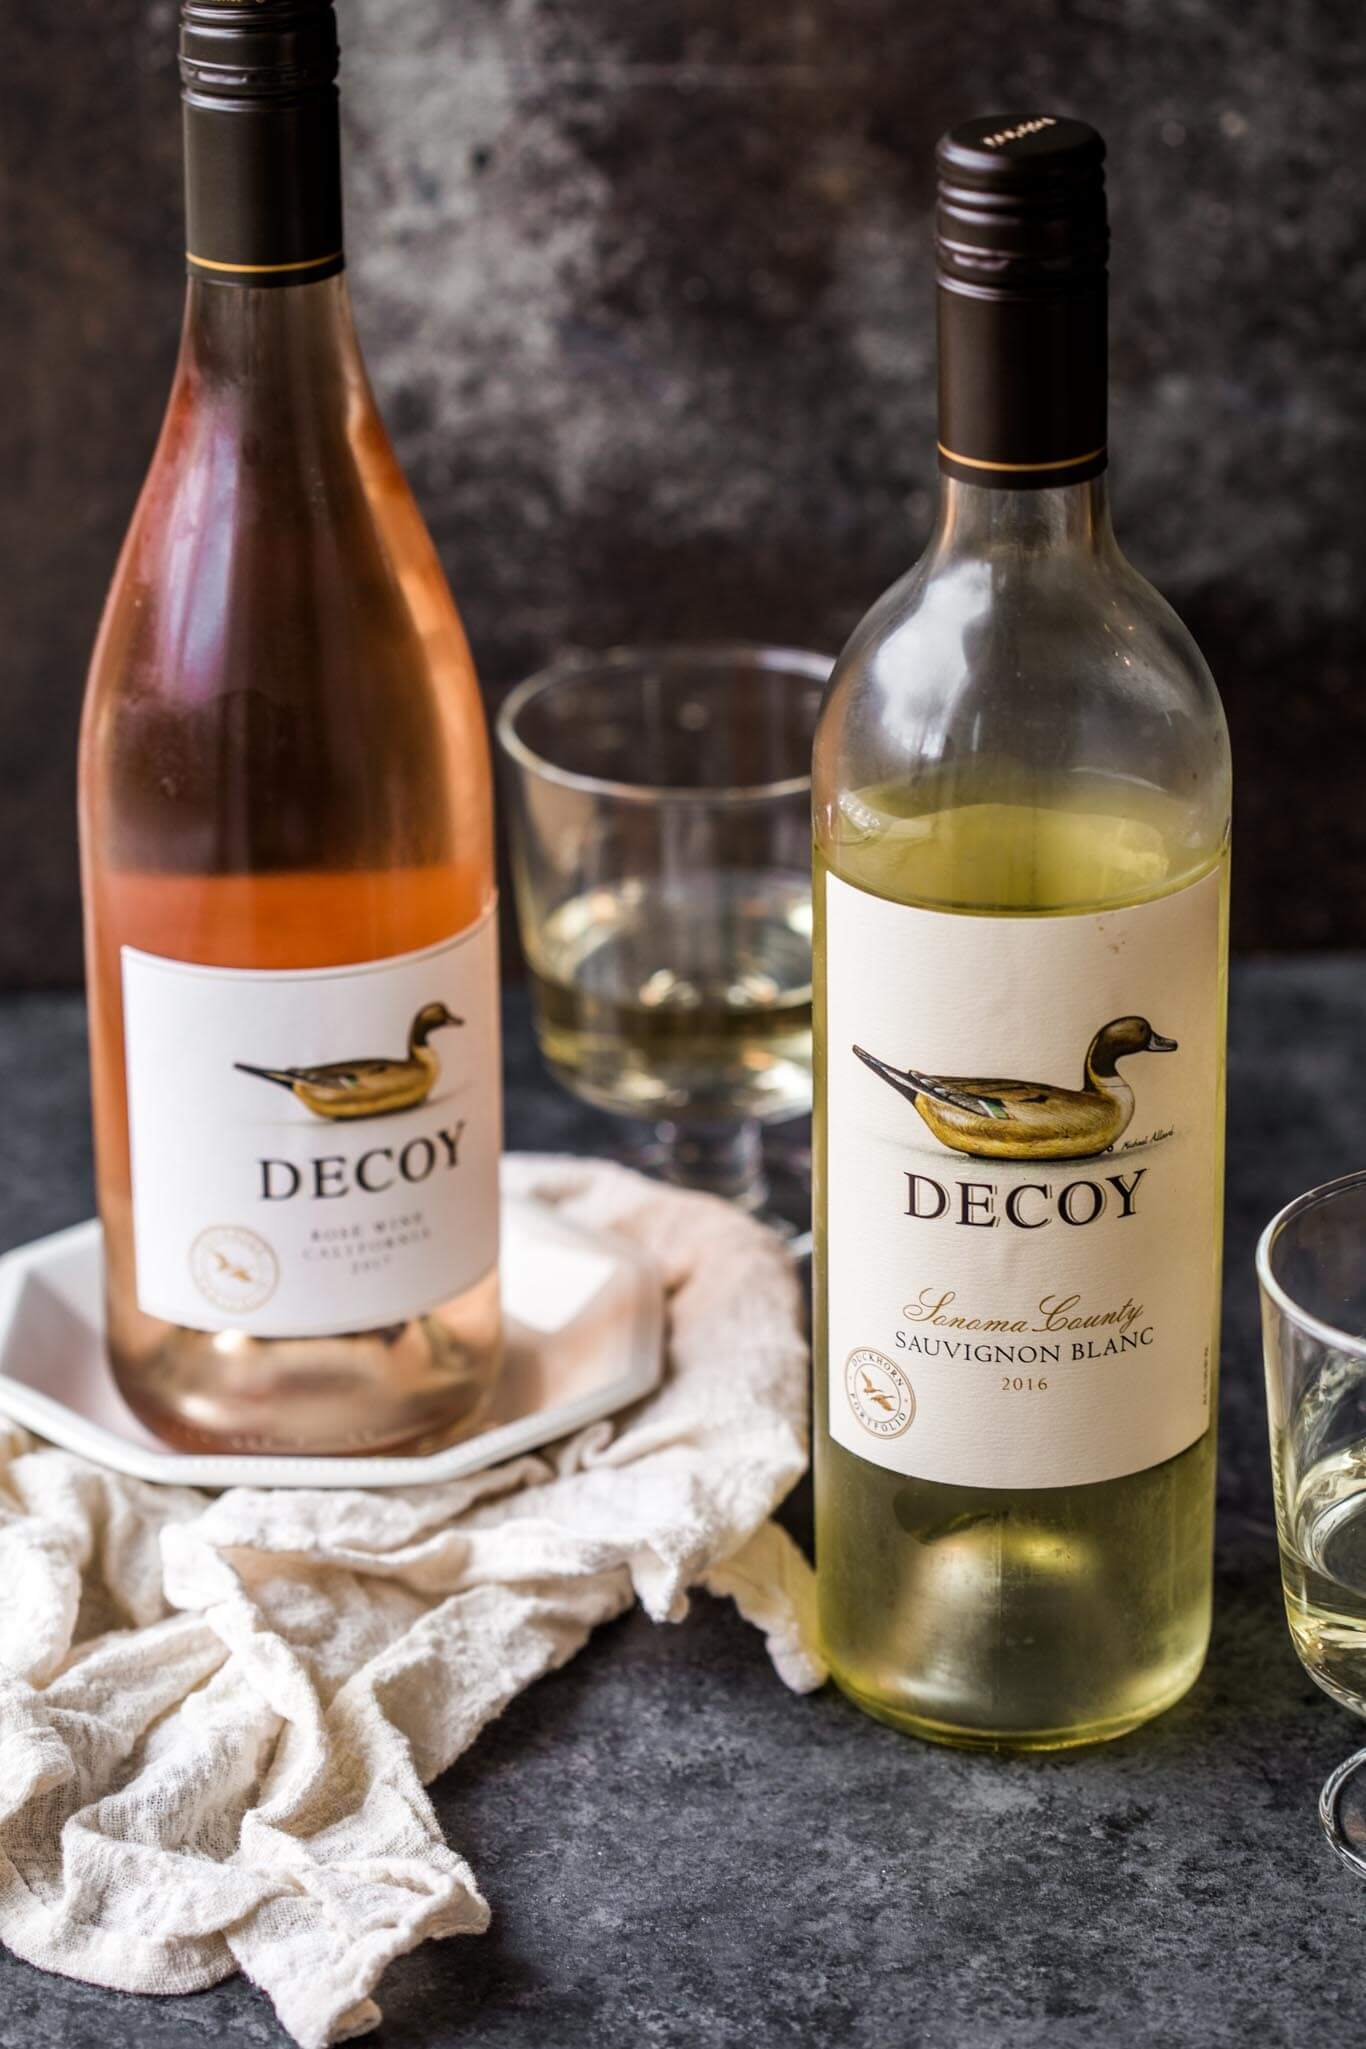 Decoy wine bottles